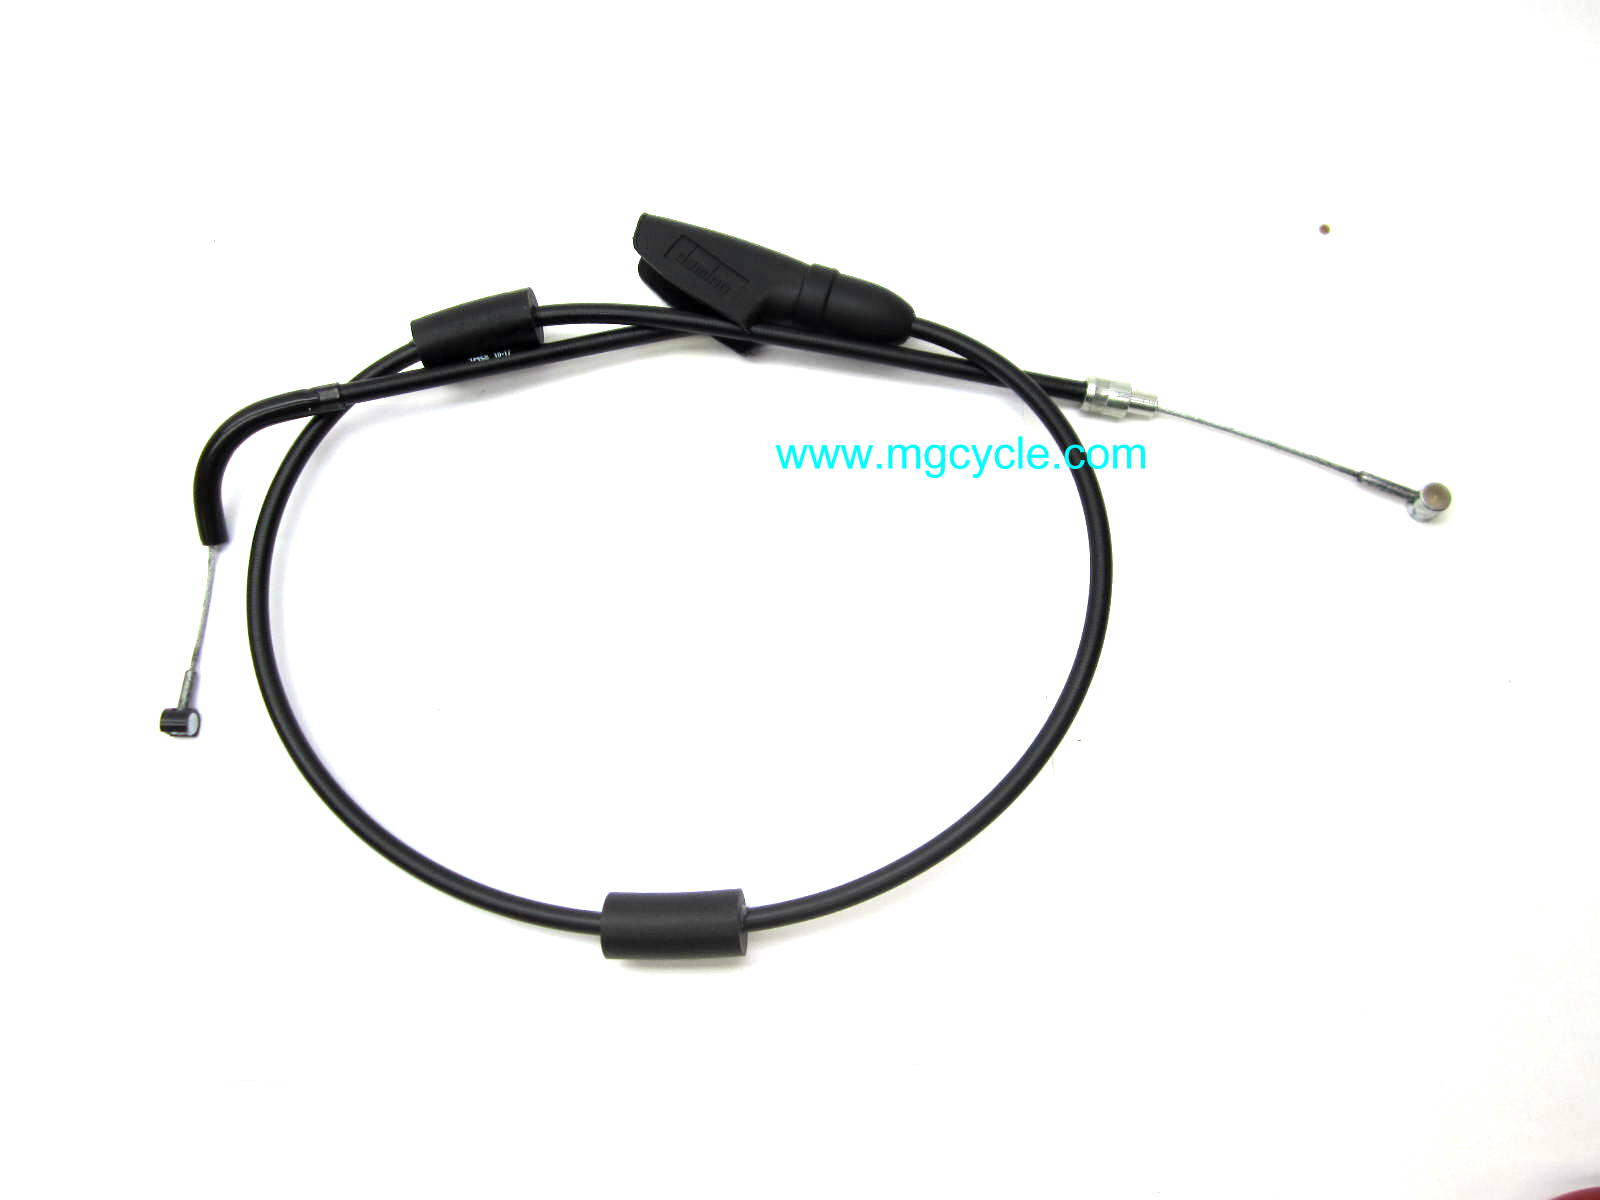 Clutch cable V7 Stone 2013-2015, V7 Special 2013-2015